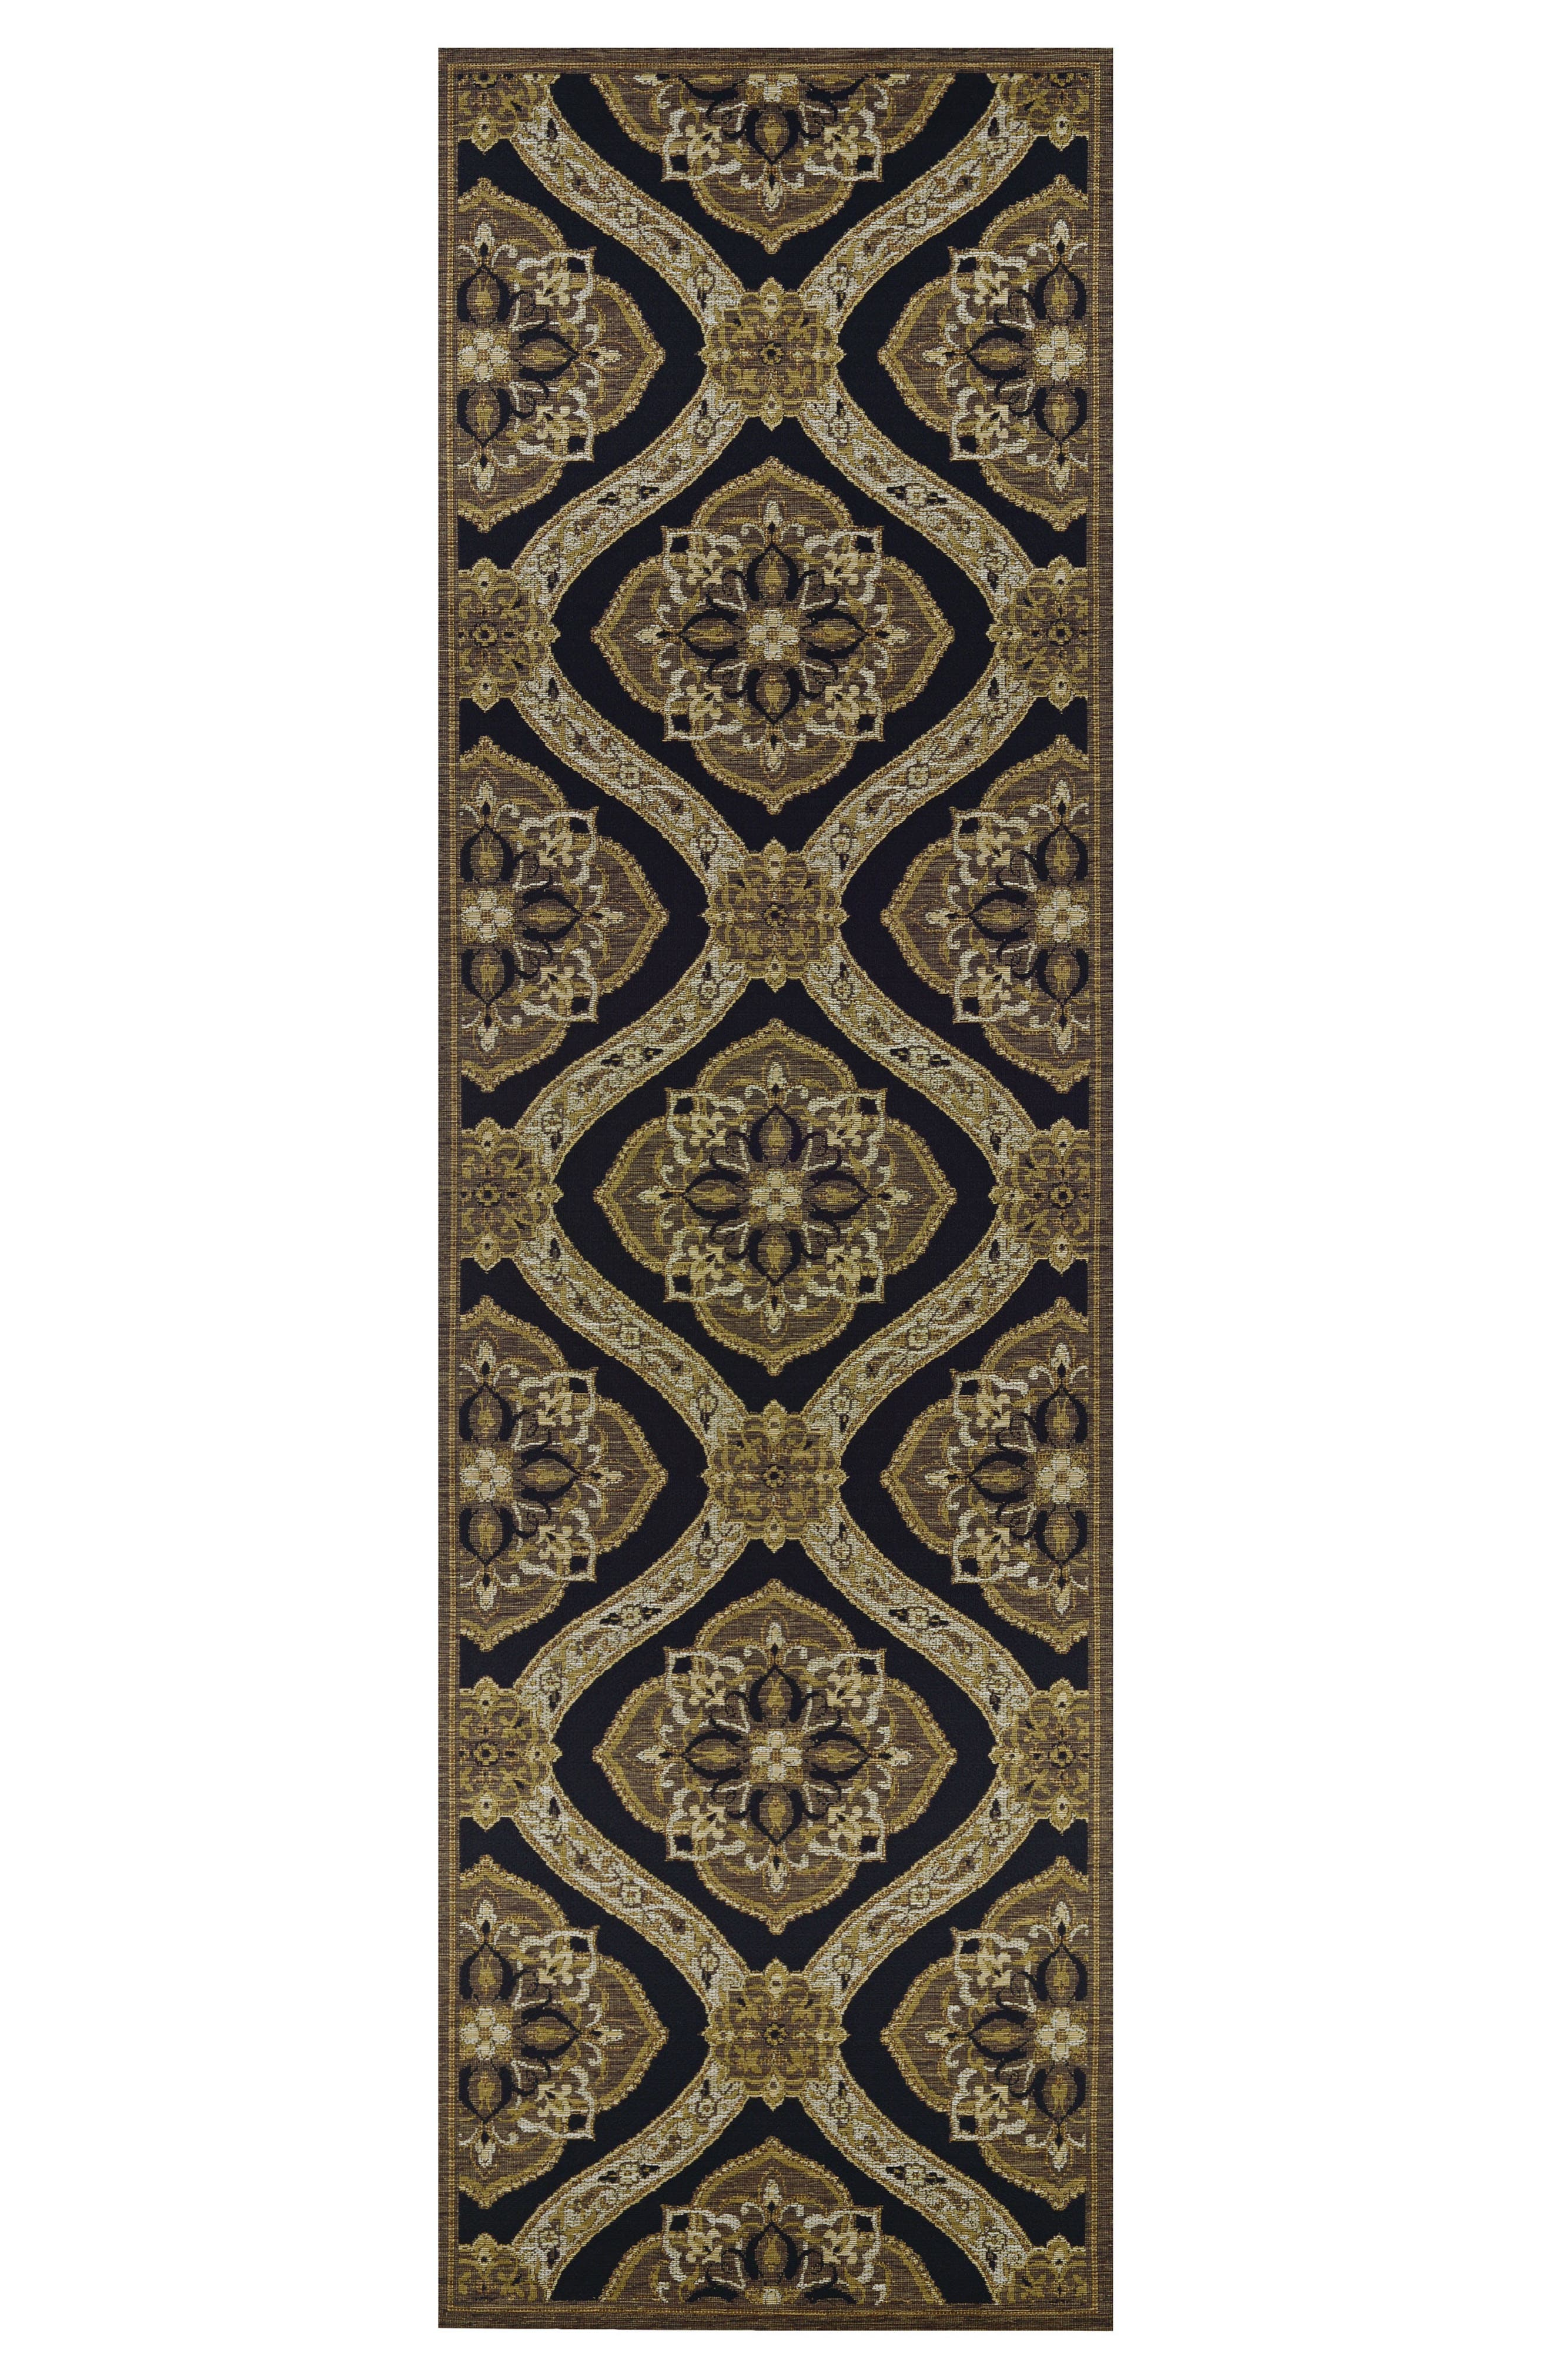 Napoli Indoor/Outdoor Rug,                             Alternate thumbnail 2, color,                             001